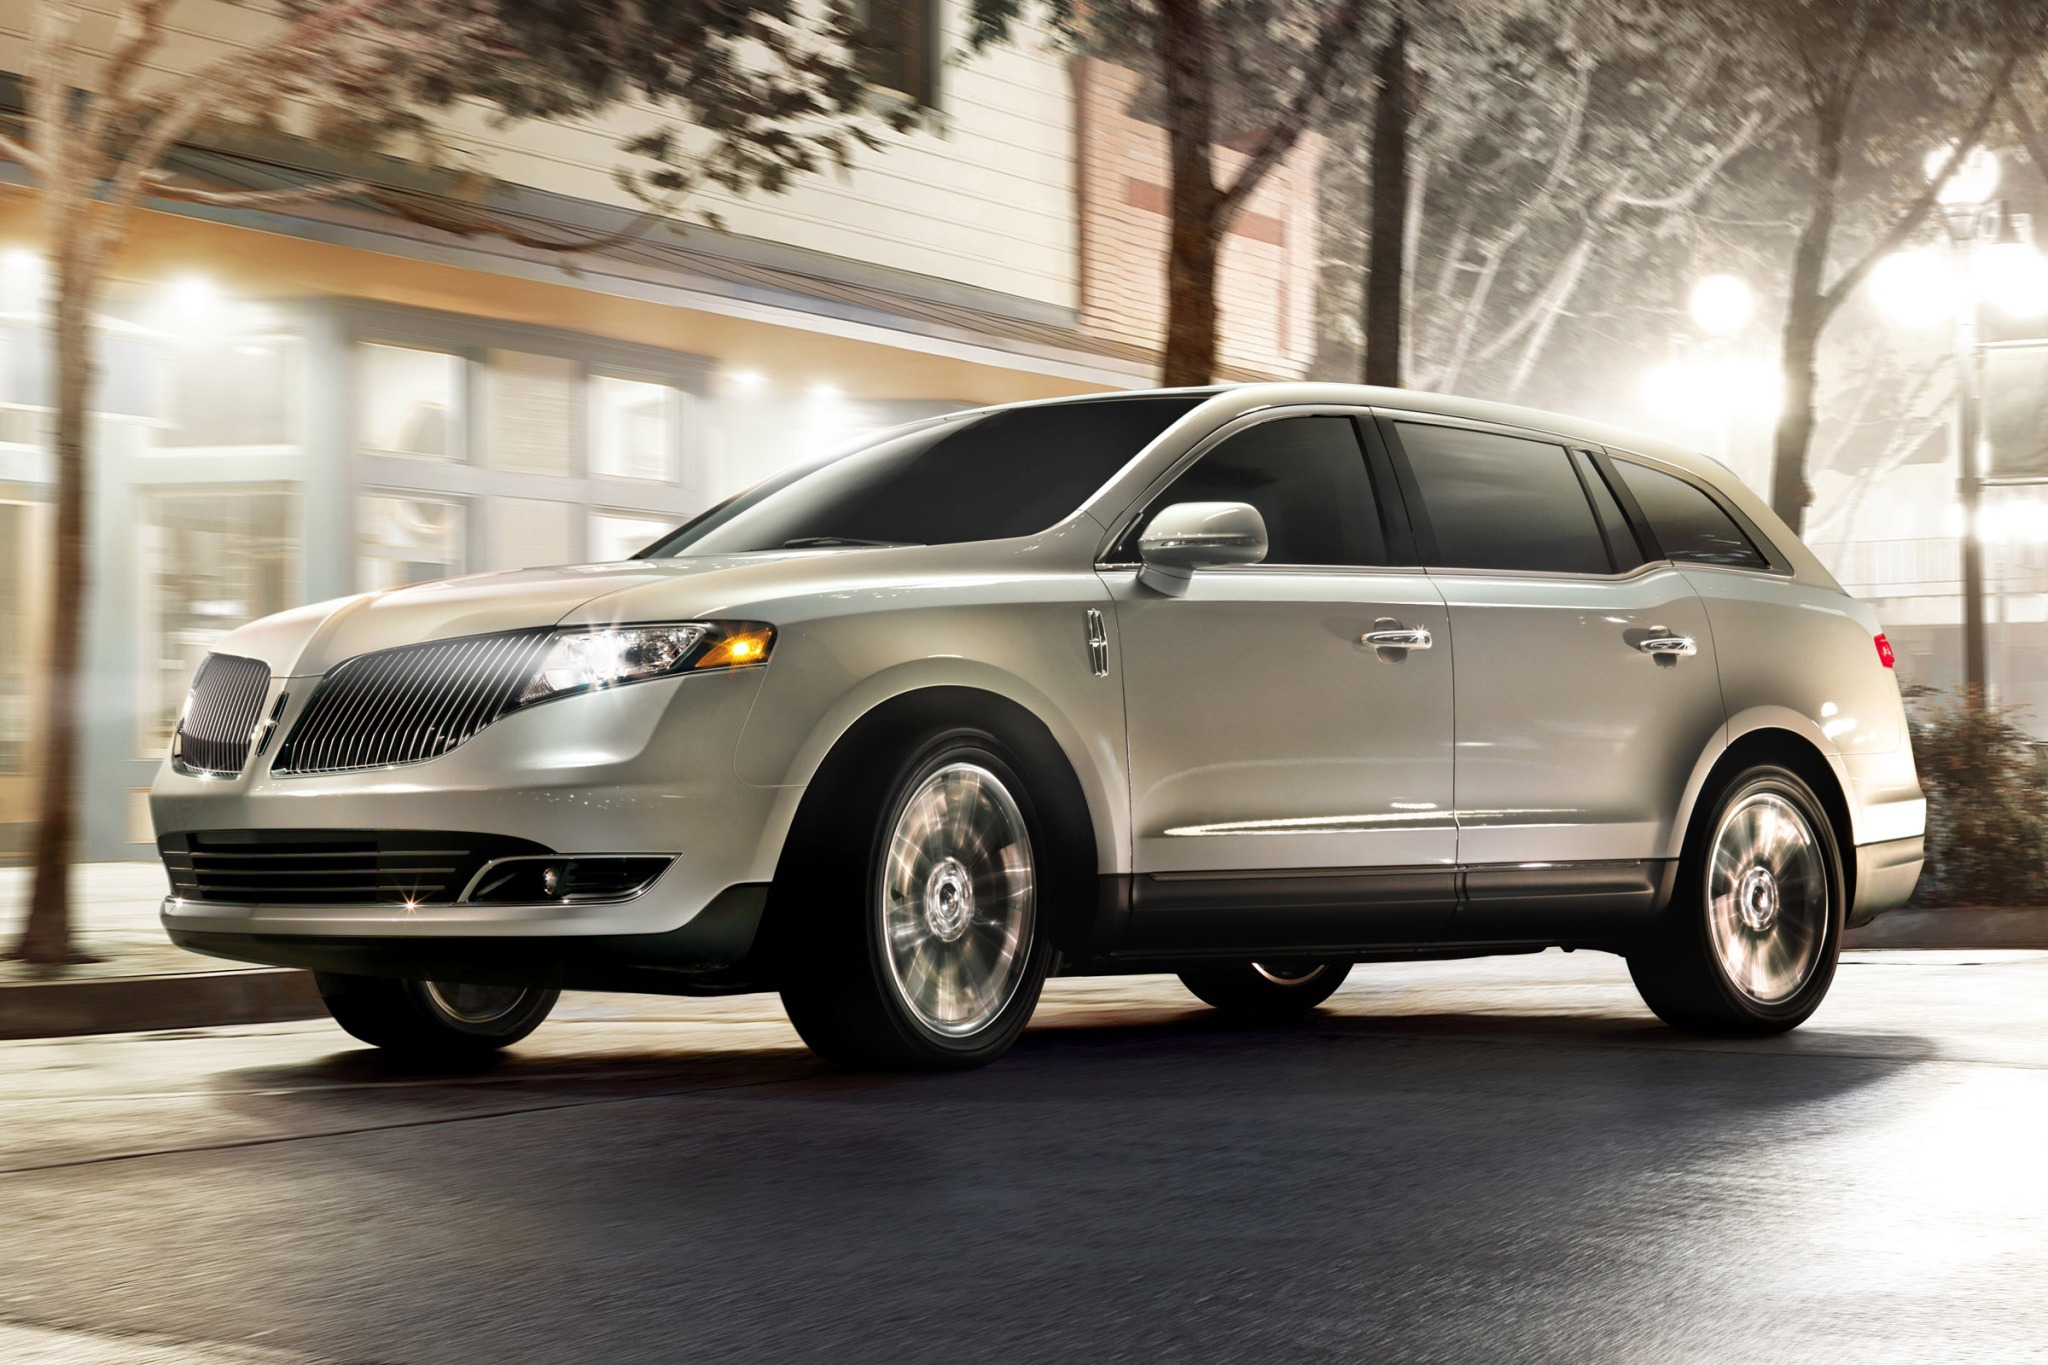 2014 Lincoln MKT Wagon Ex exterior #3